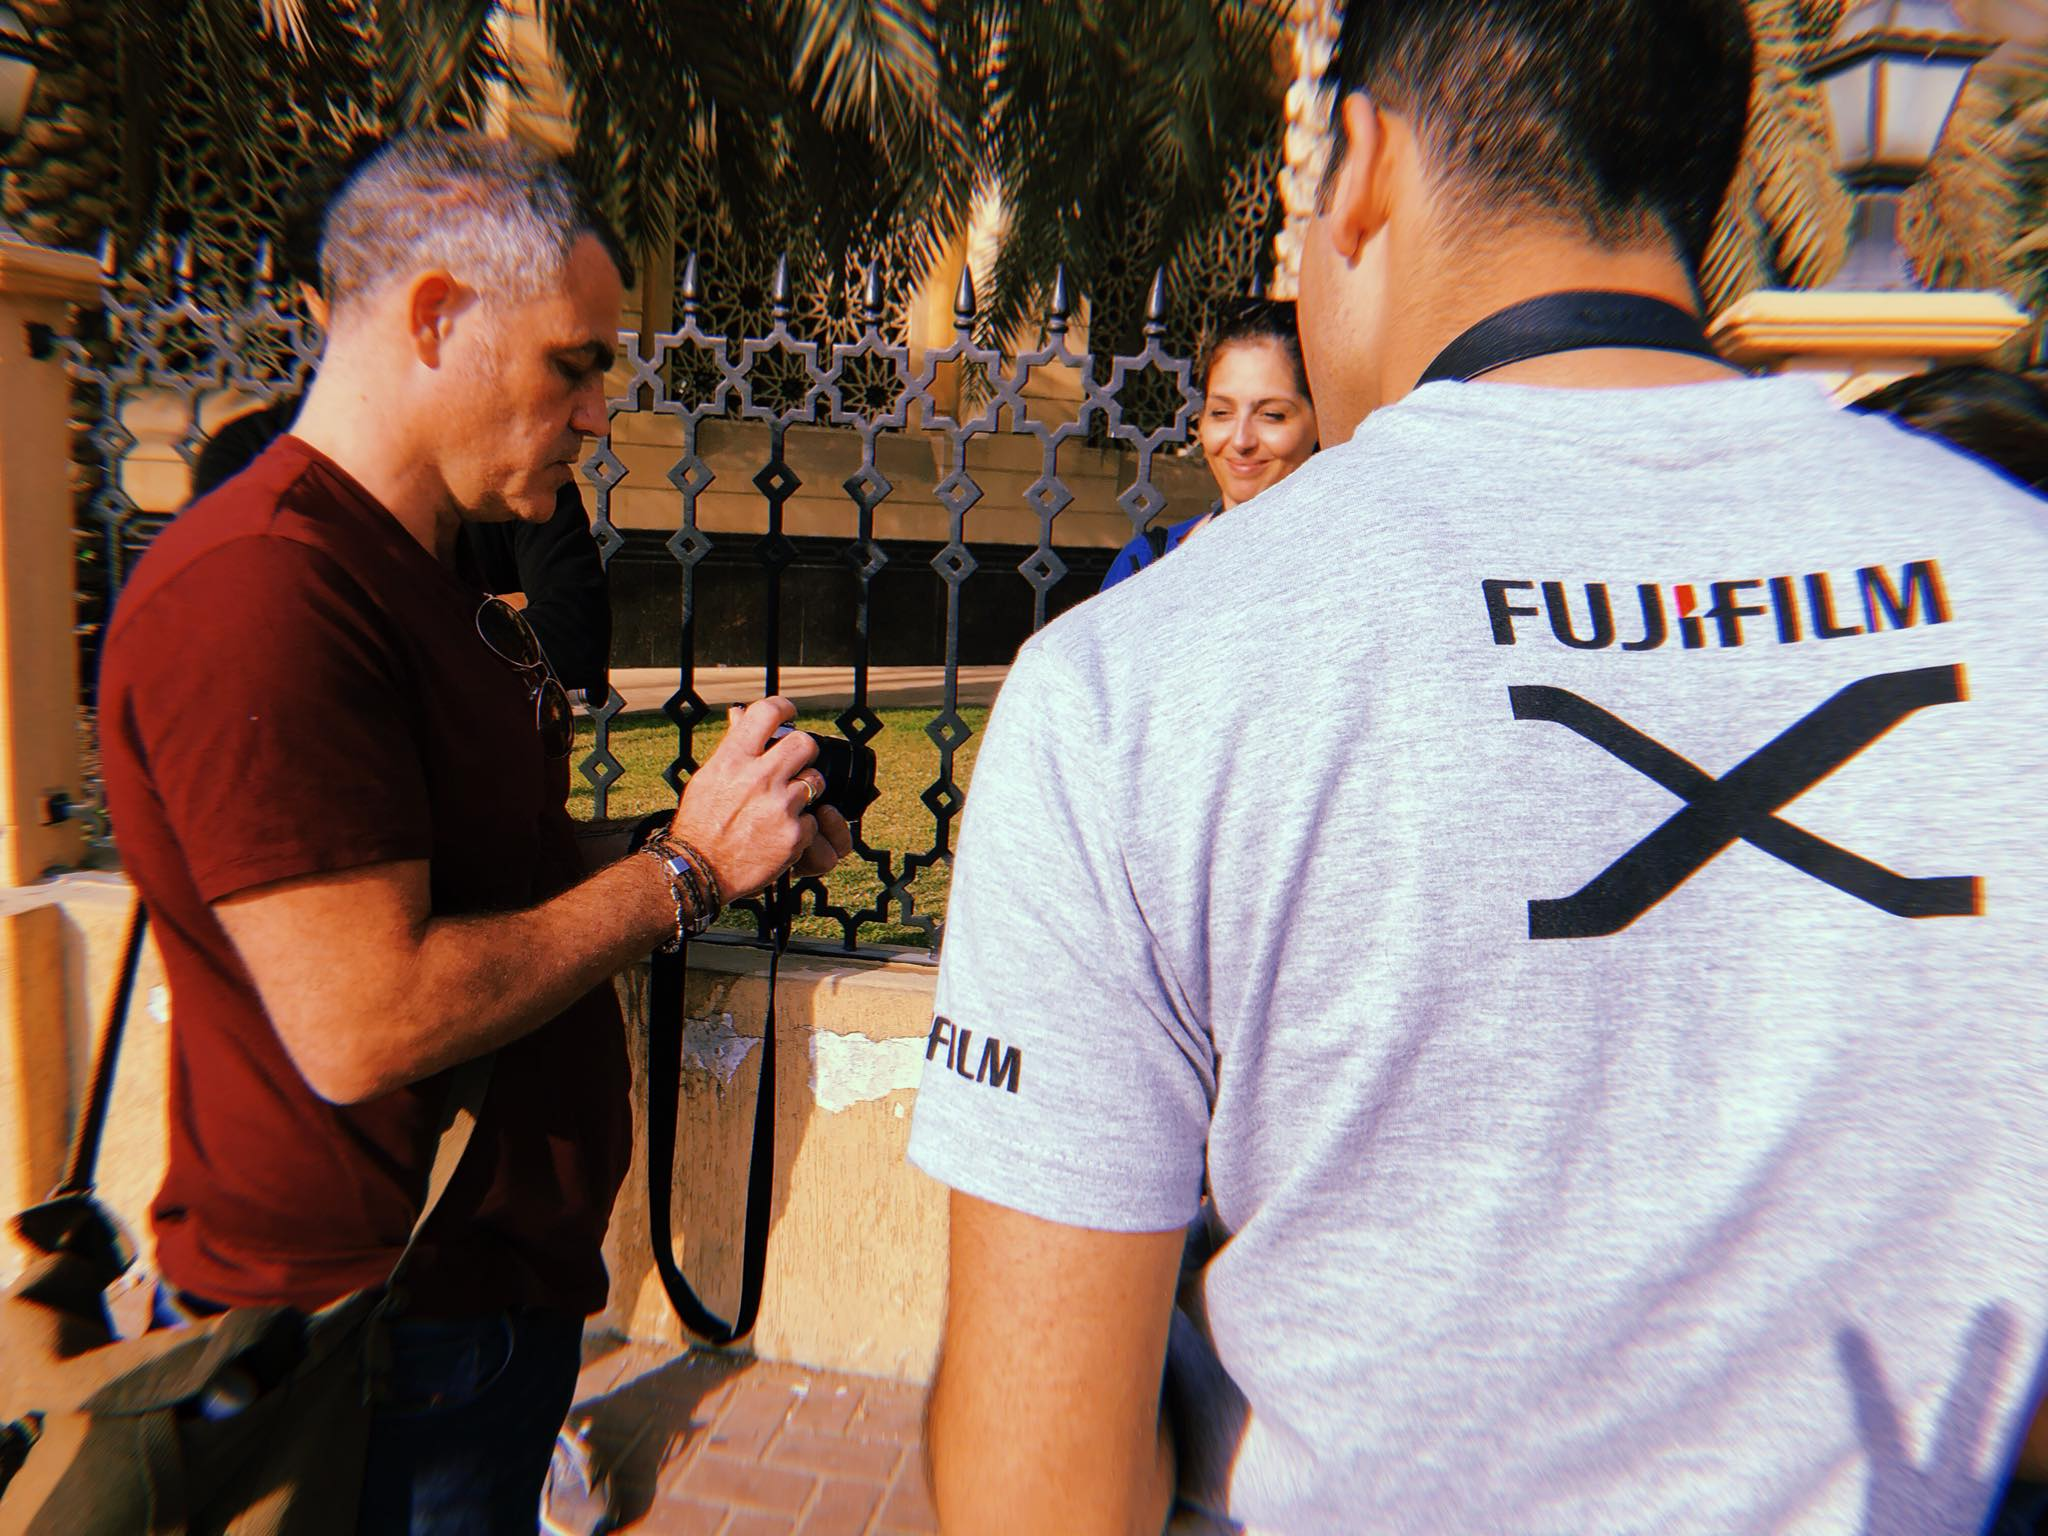 Fujifilm Help & Training - If you would like to get the most out of your Fujifilm cameras, these sessions are designed specifically for you.See all of the Fujifilm Help Workshops.